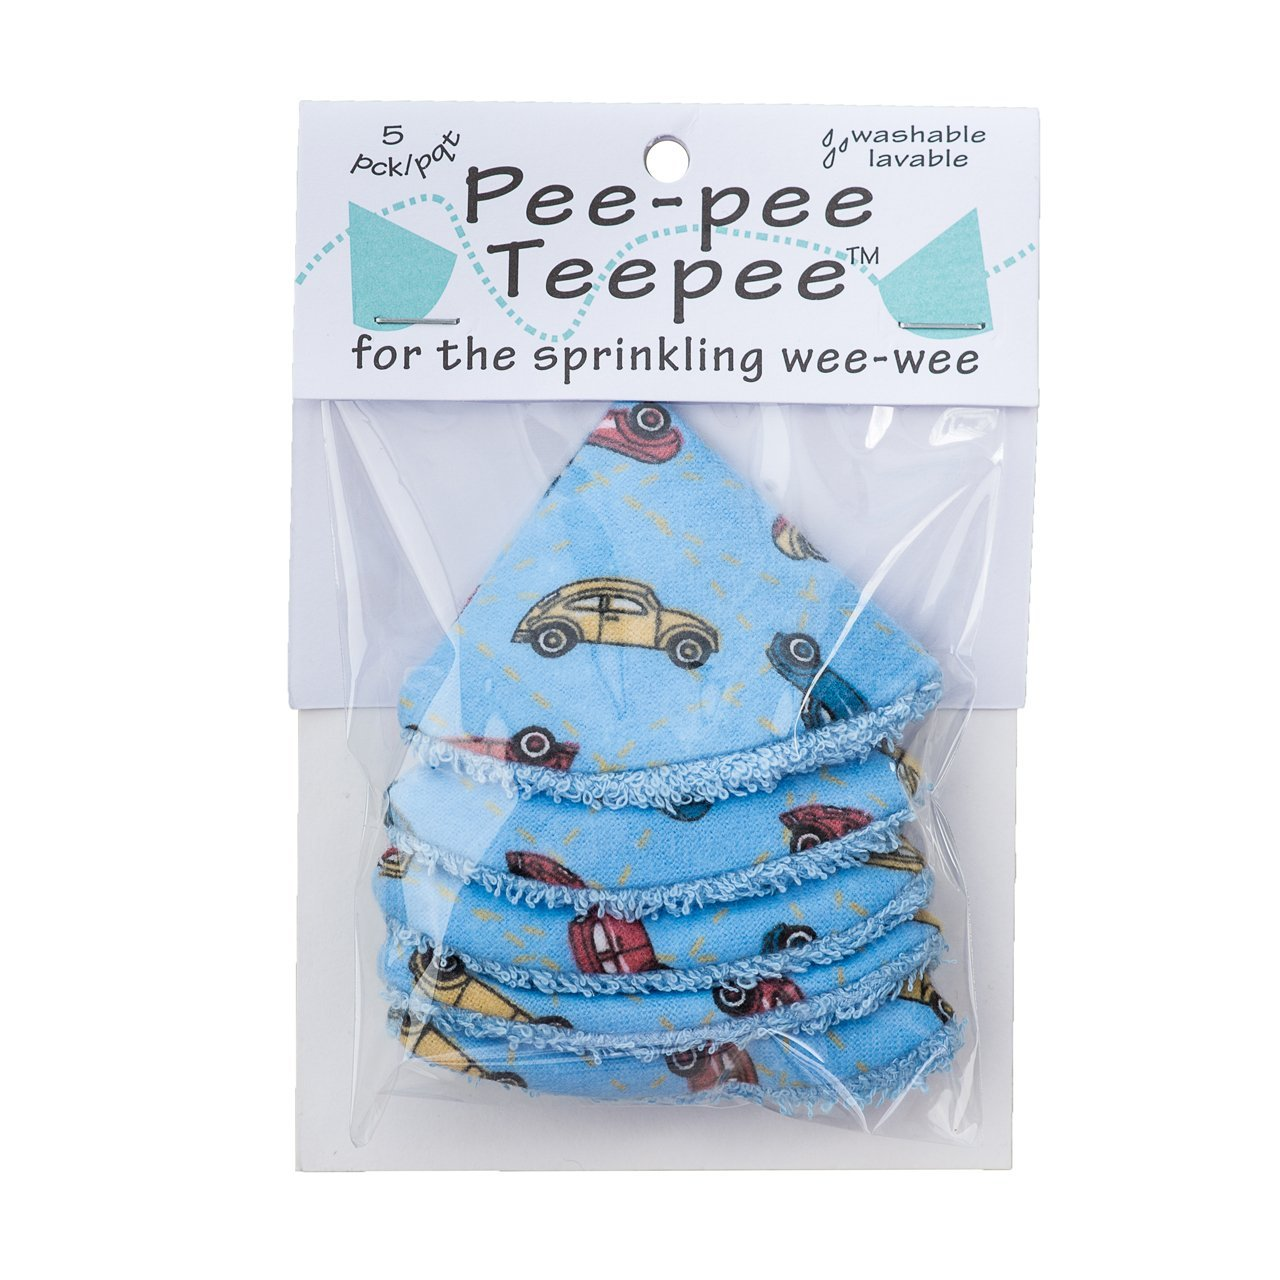 Pee-pee Teepee Cars Blue - Cello Bag Beba Bean PT3012-3